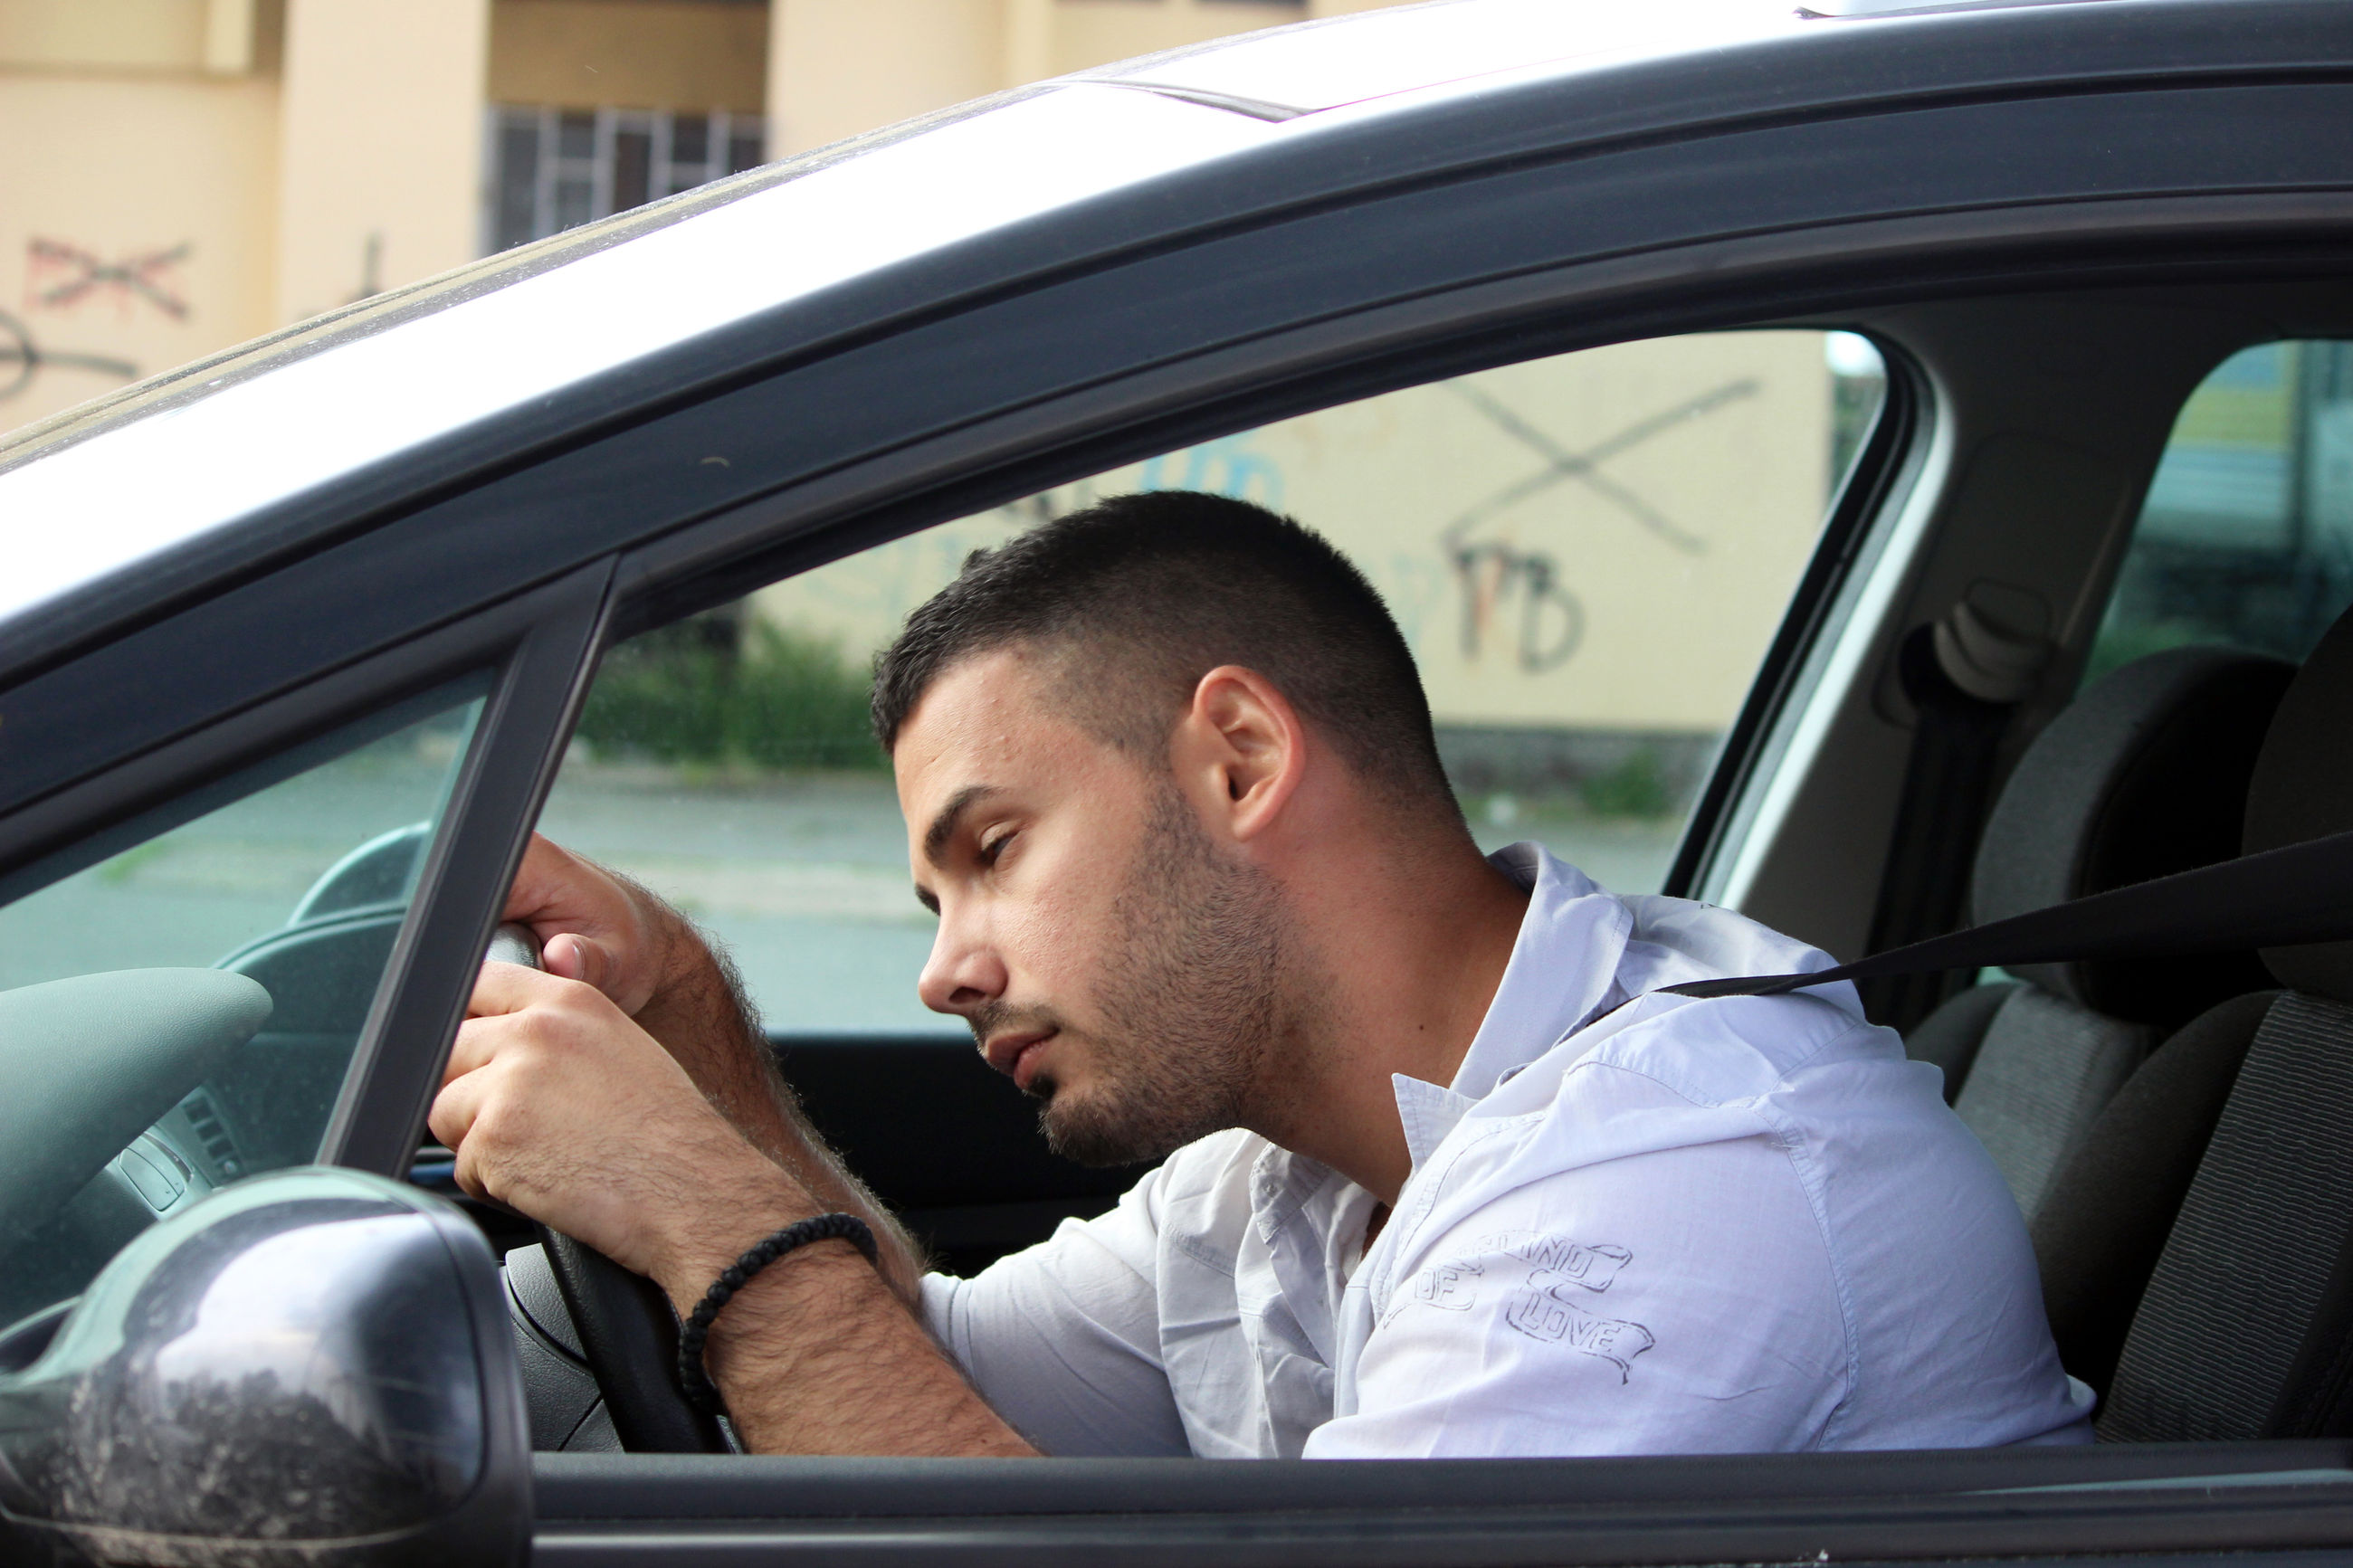 PORTRAIT OF A YOUNG MAN SITTING IN CAR